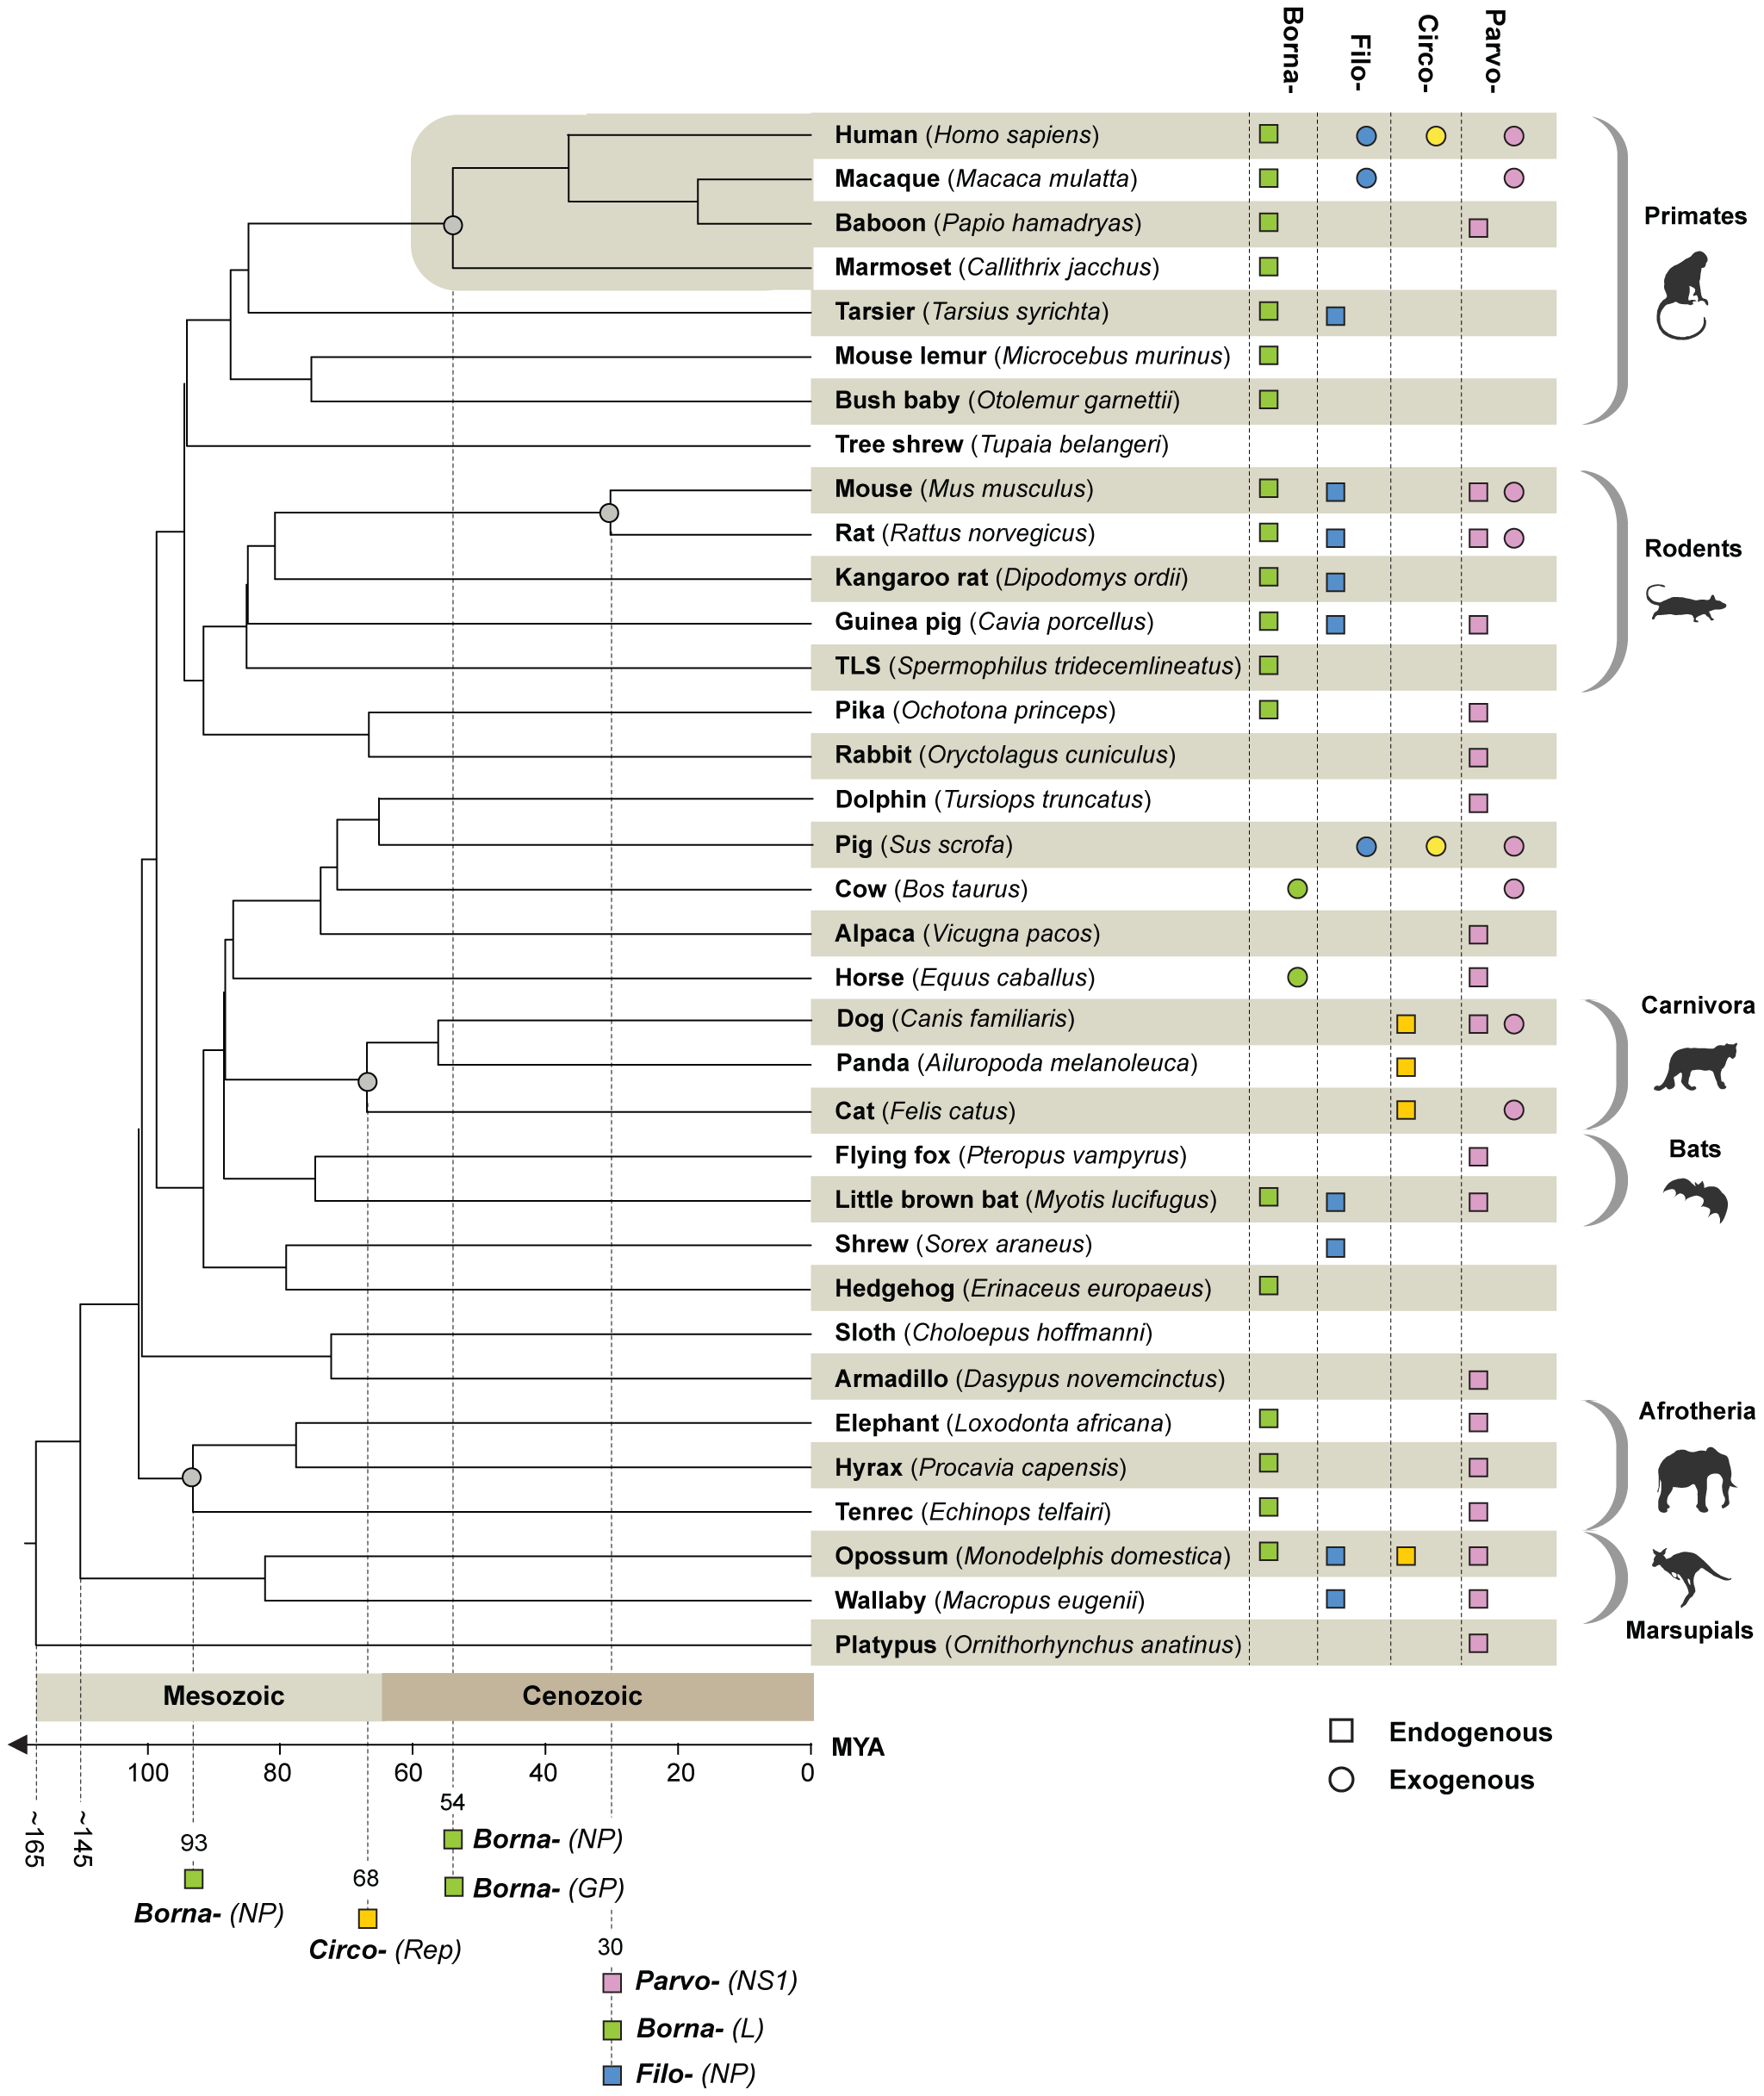 Timescaled phylogenetic tree of mammals screened in this study (after Bininda-Emonds <i>et al</i> <em class=&quot;ref&quot;>[<b>42</b>]</em>) showing the known distribution of EVEs and of exogenous Borna-, Filo-, Circo-, and Parvoviruses.